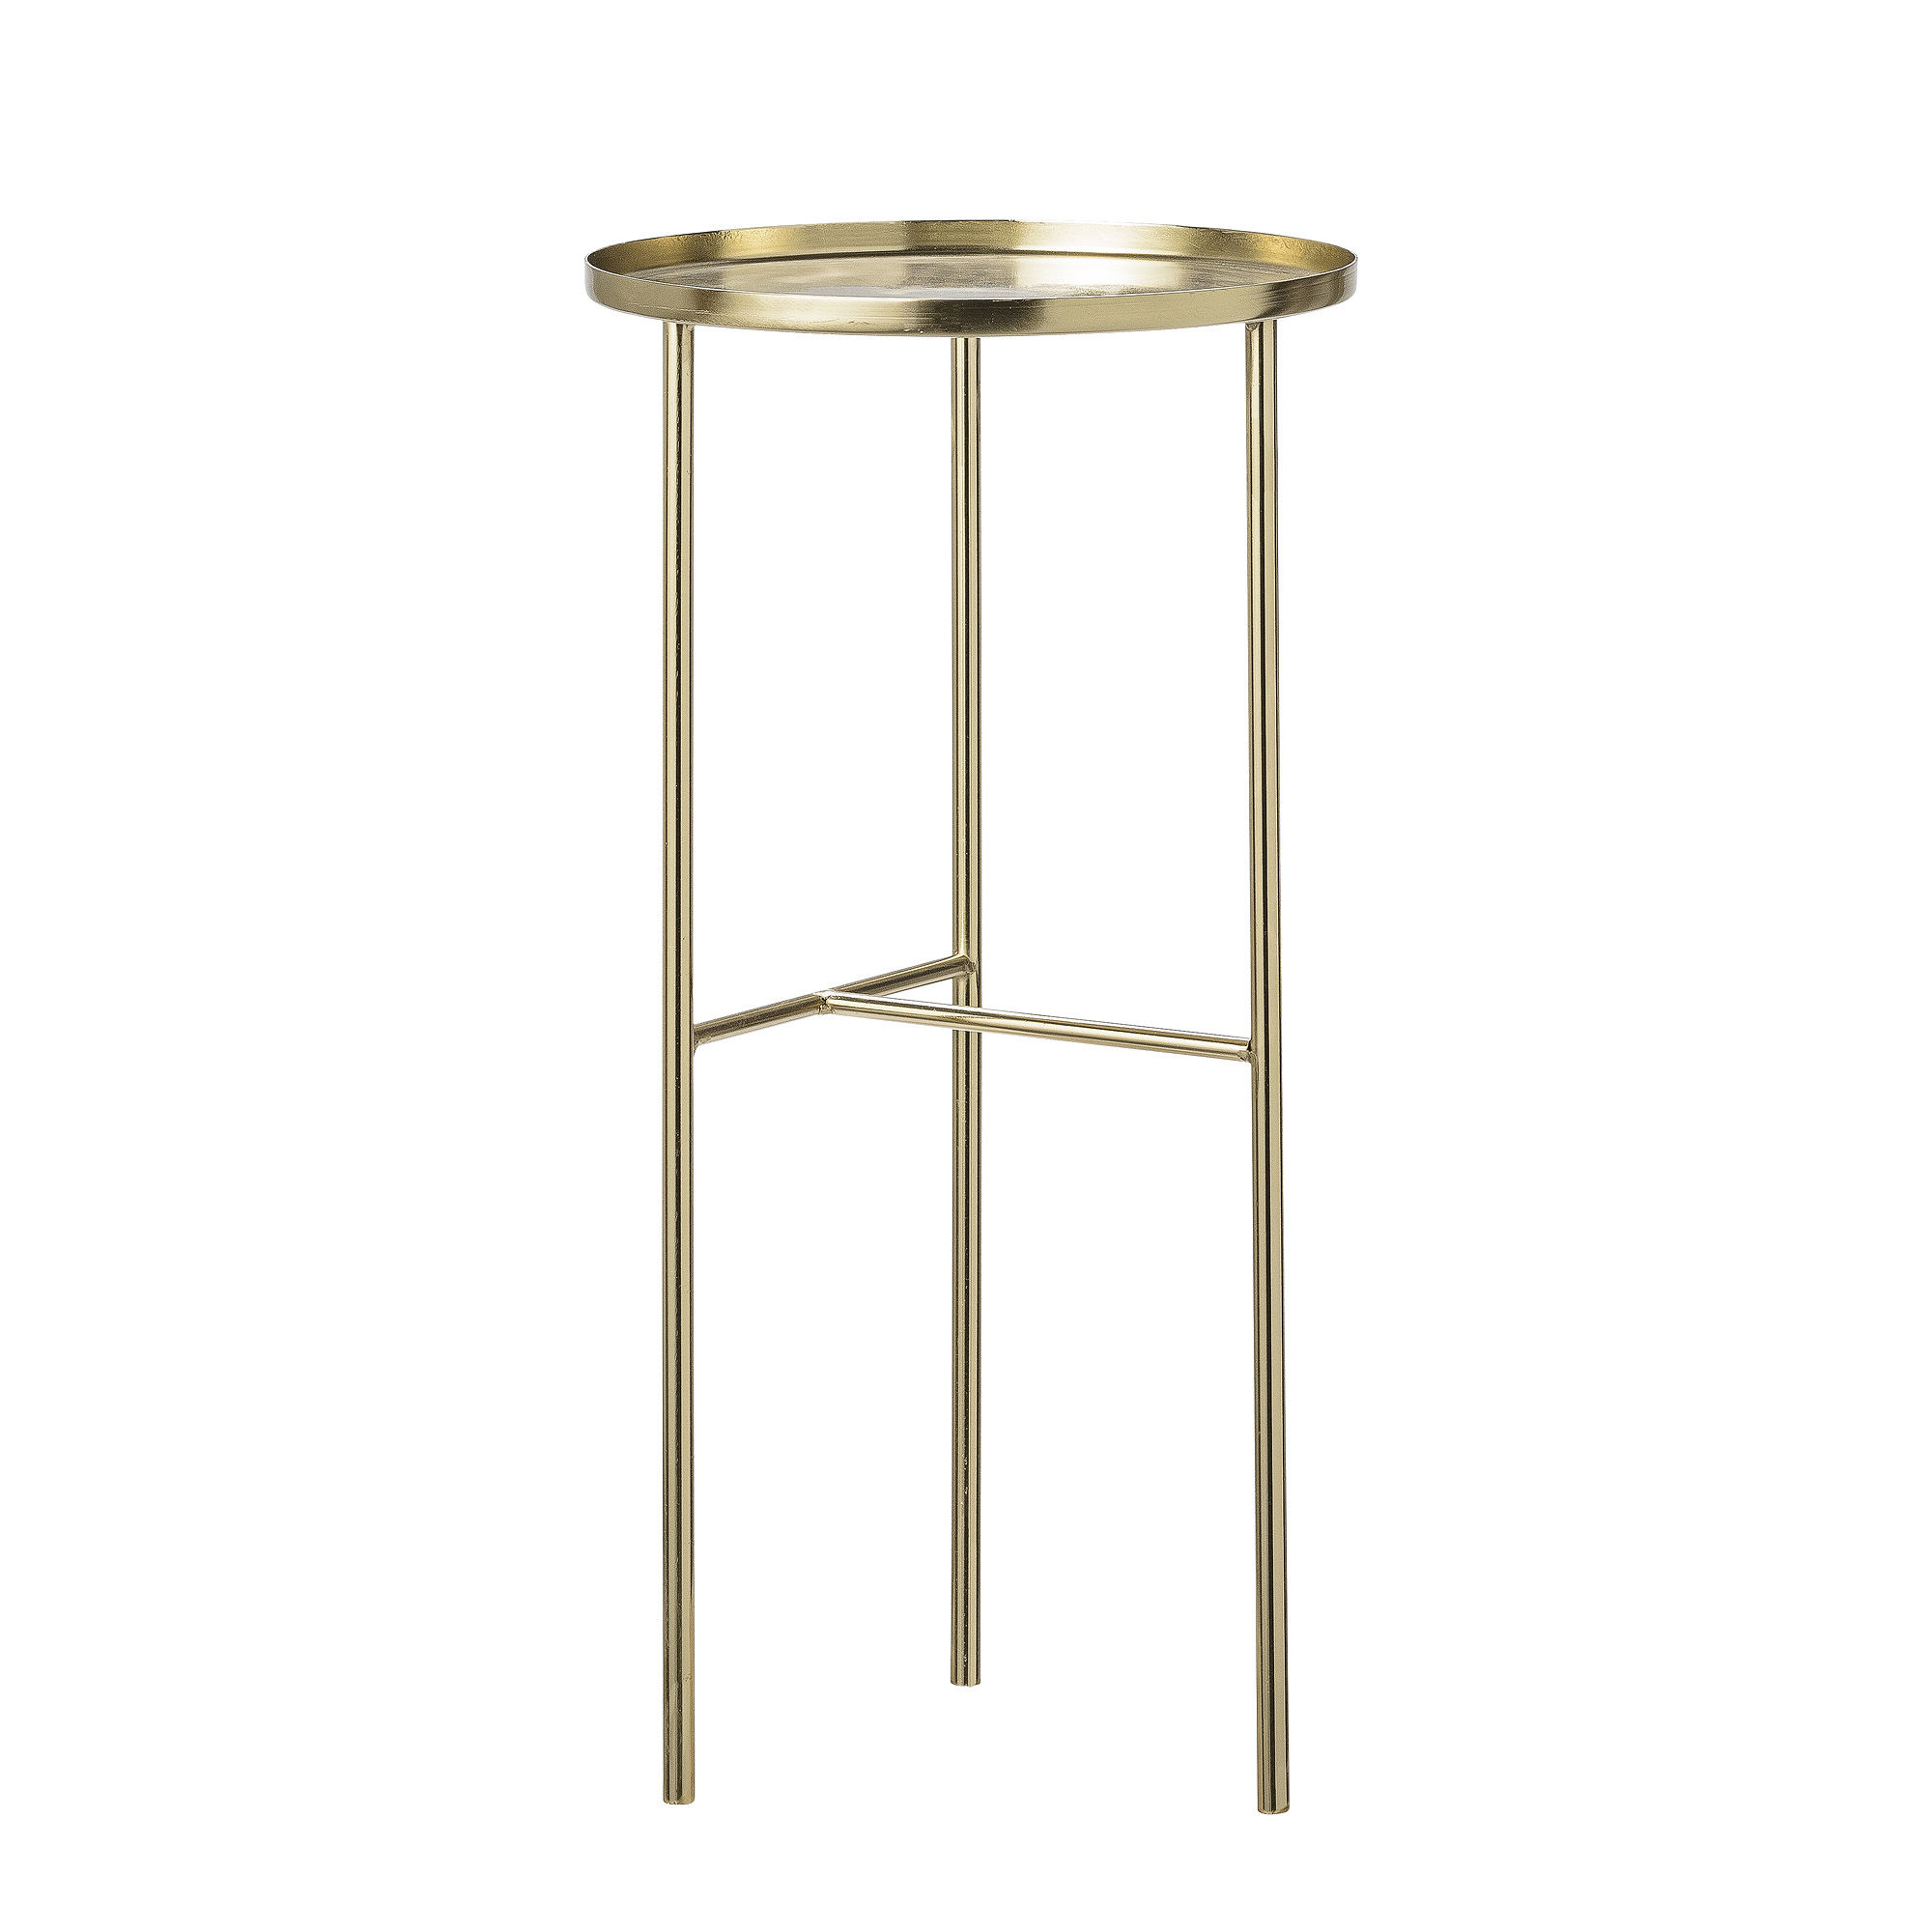 Furniture - Coffee Tables - Pretty Small table - / Plant stand - Ø 30 x H 60 cm by Bloomingville - Gold - Brass plated metal